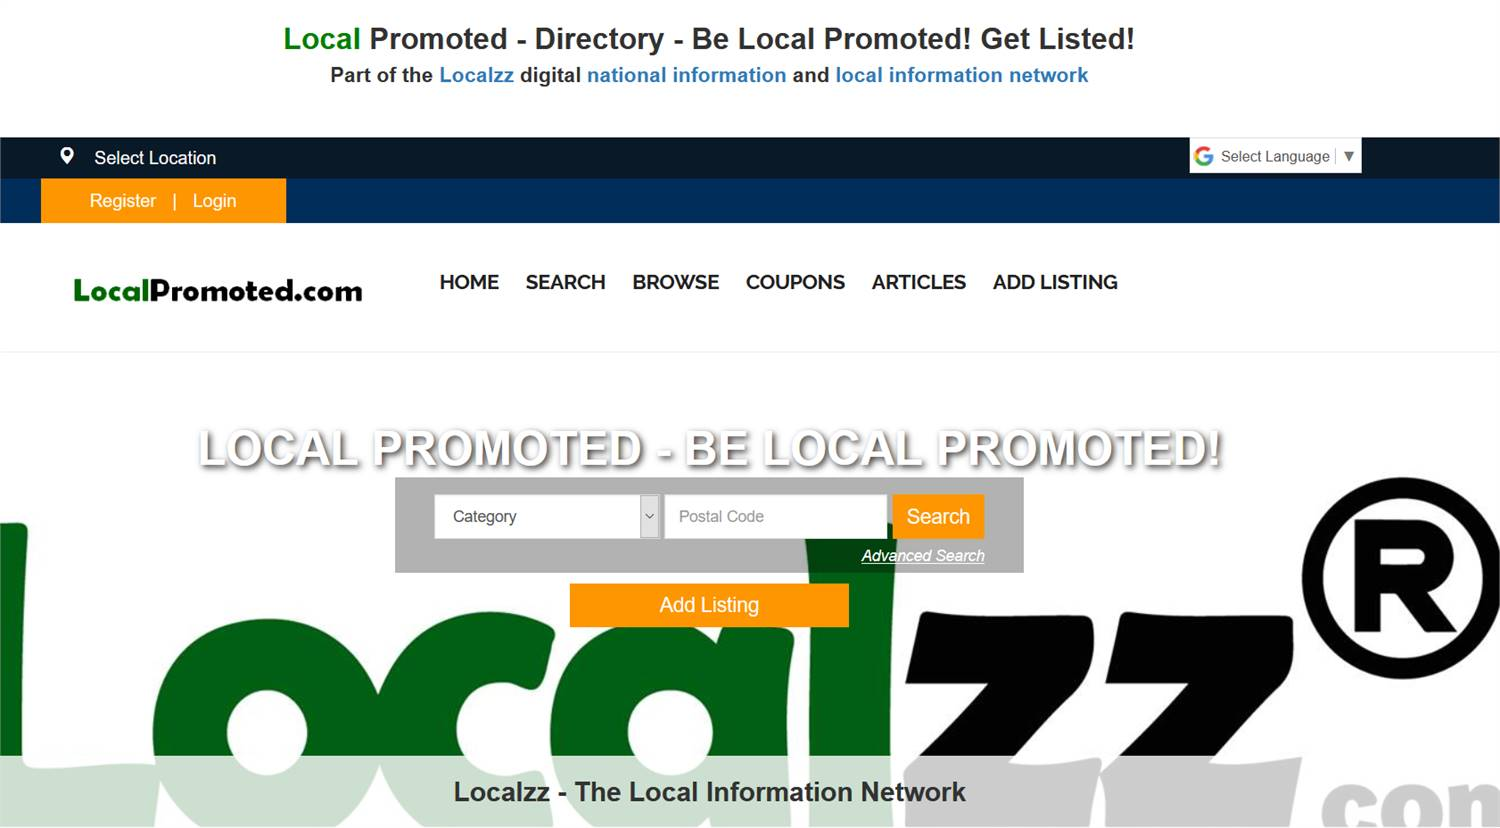 LocalPromoted.com -National to local business and information listings